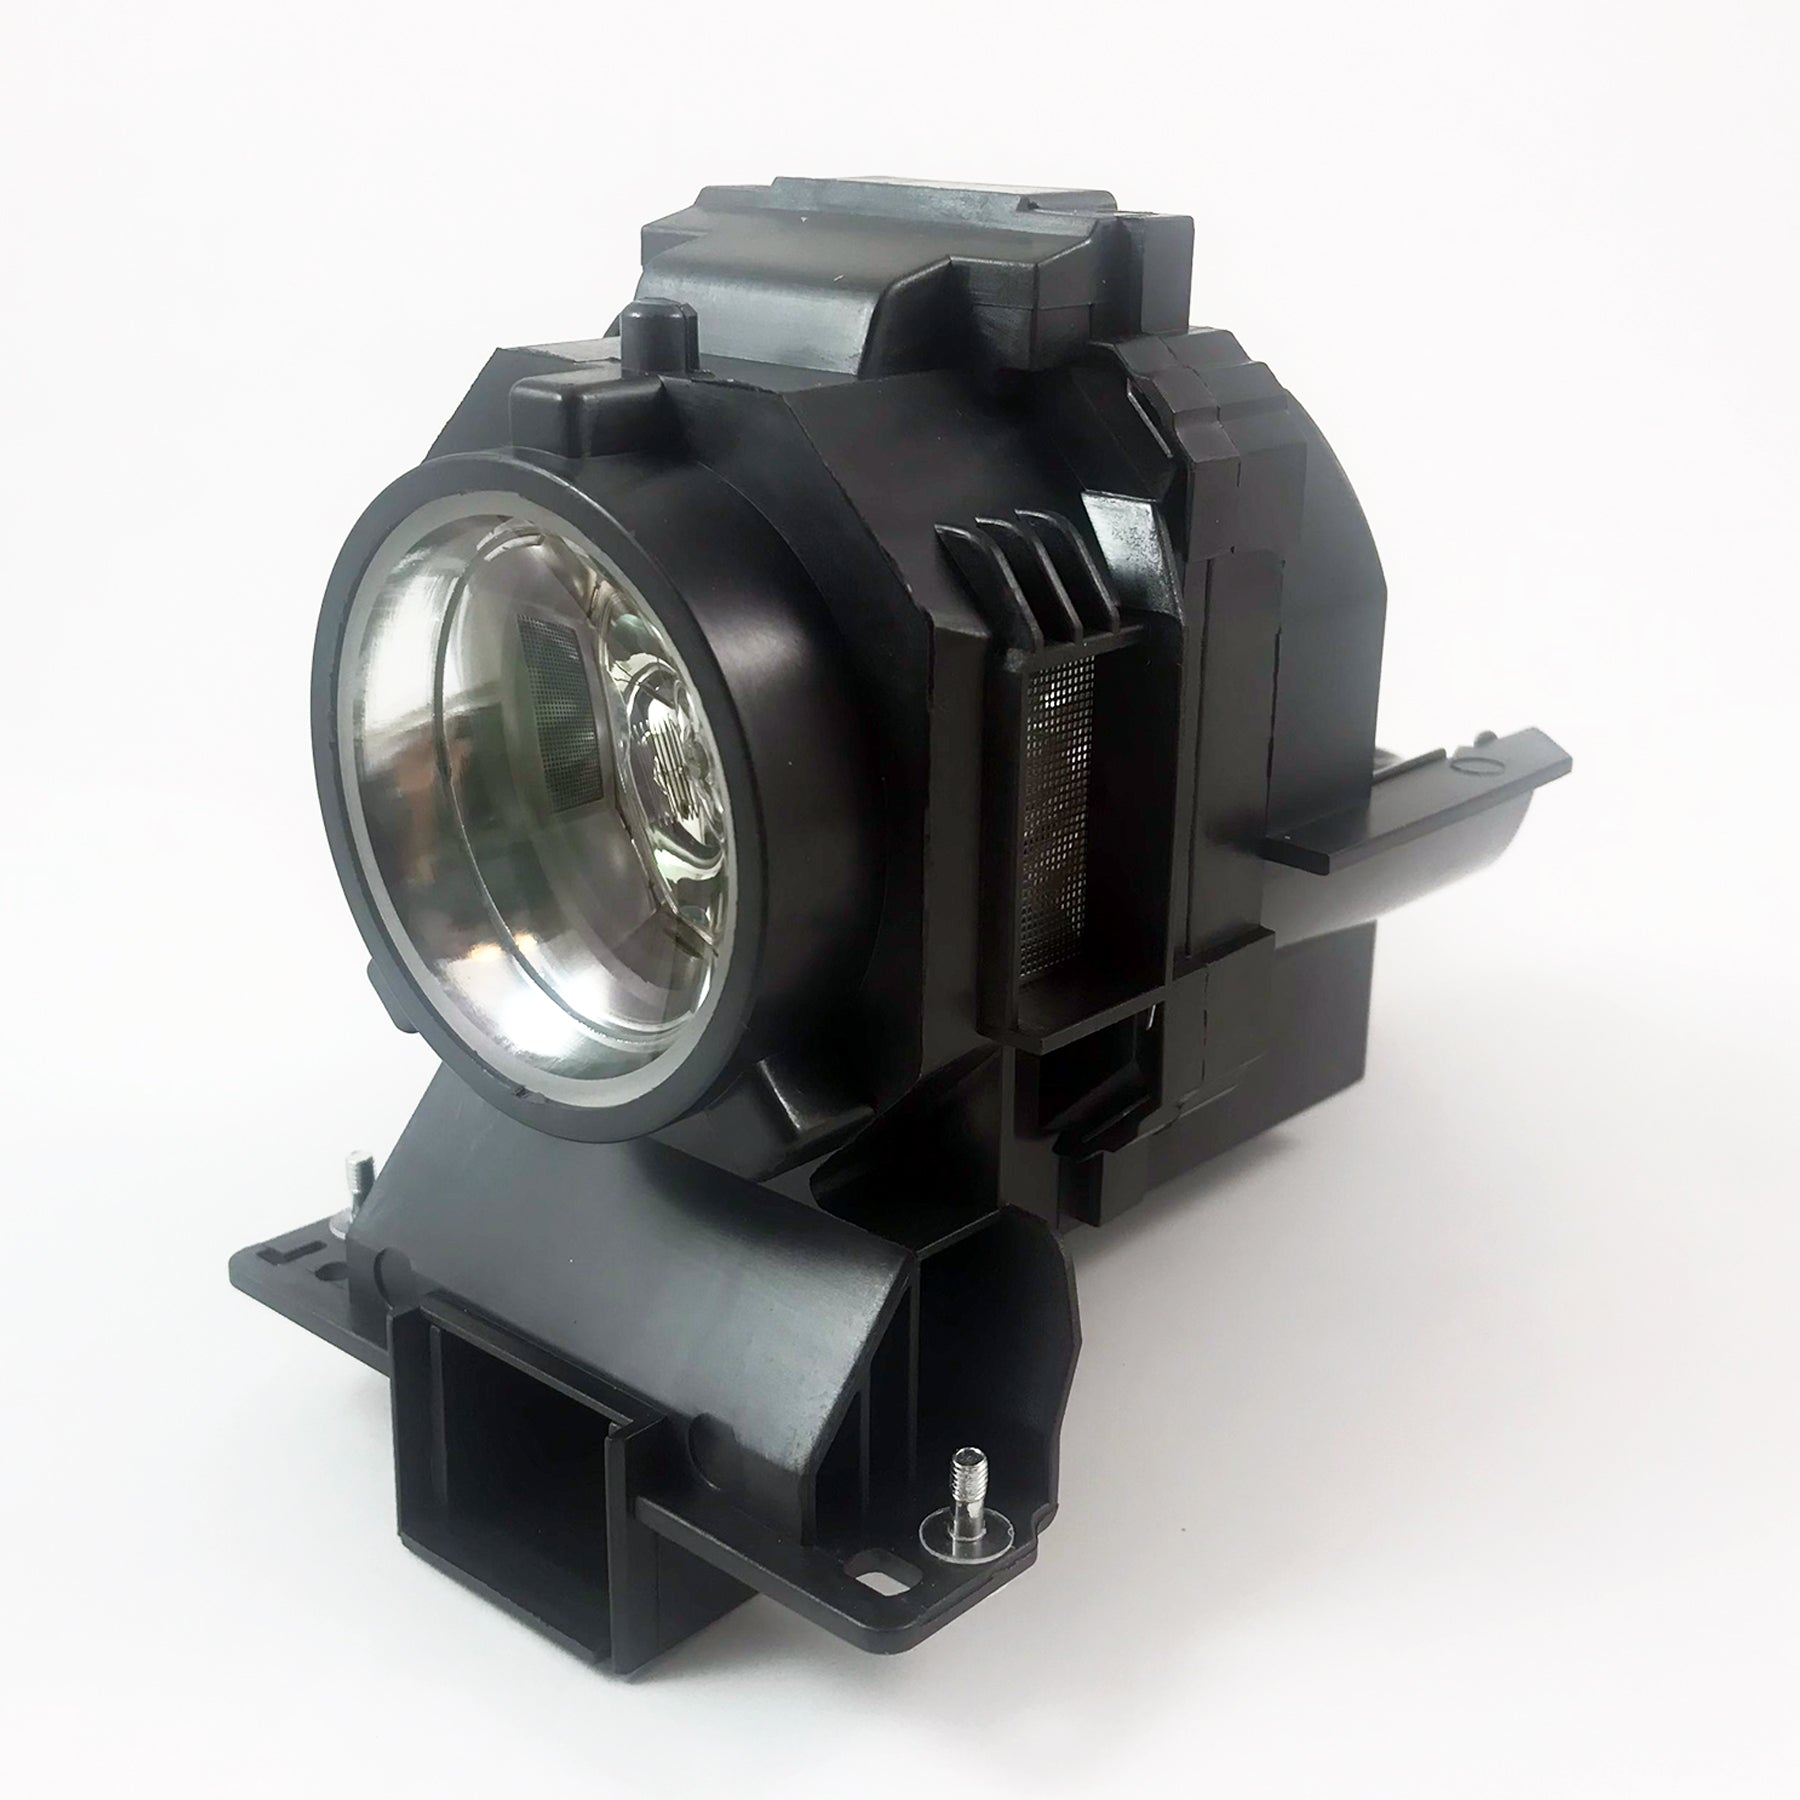 Infocus IN5542 Projector Housing with Genuine Original OEM Bulb